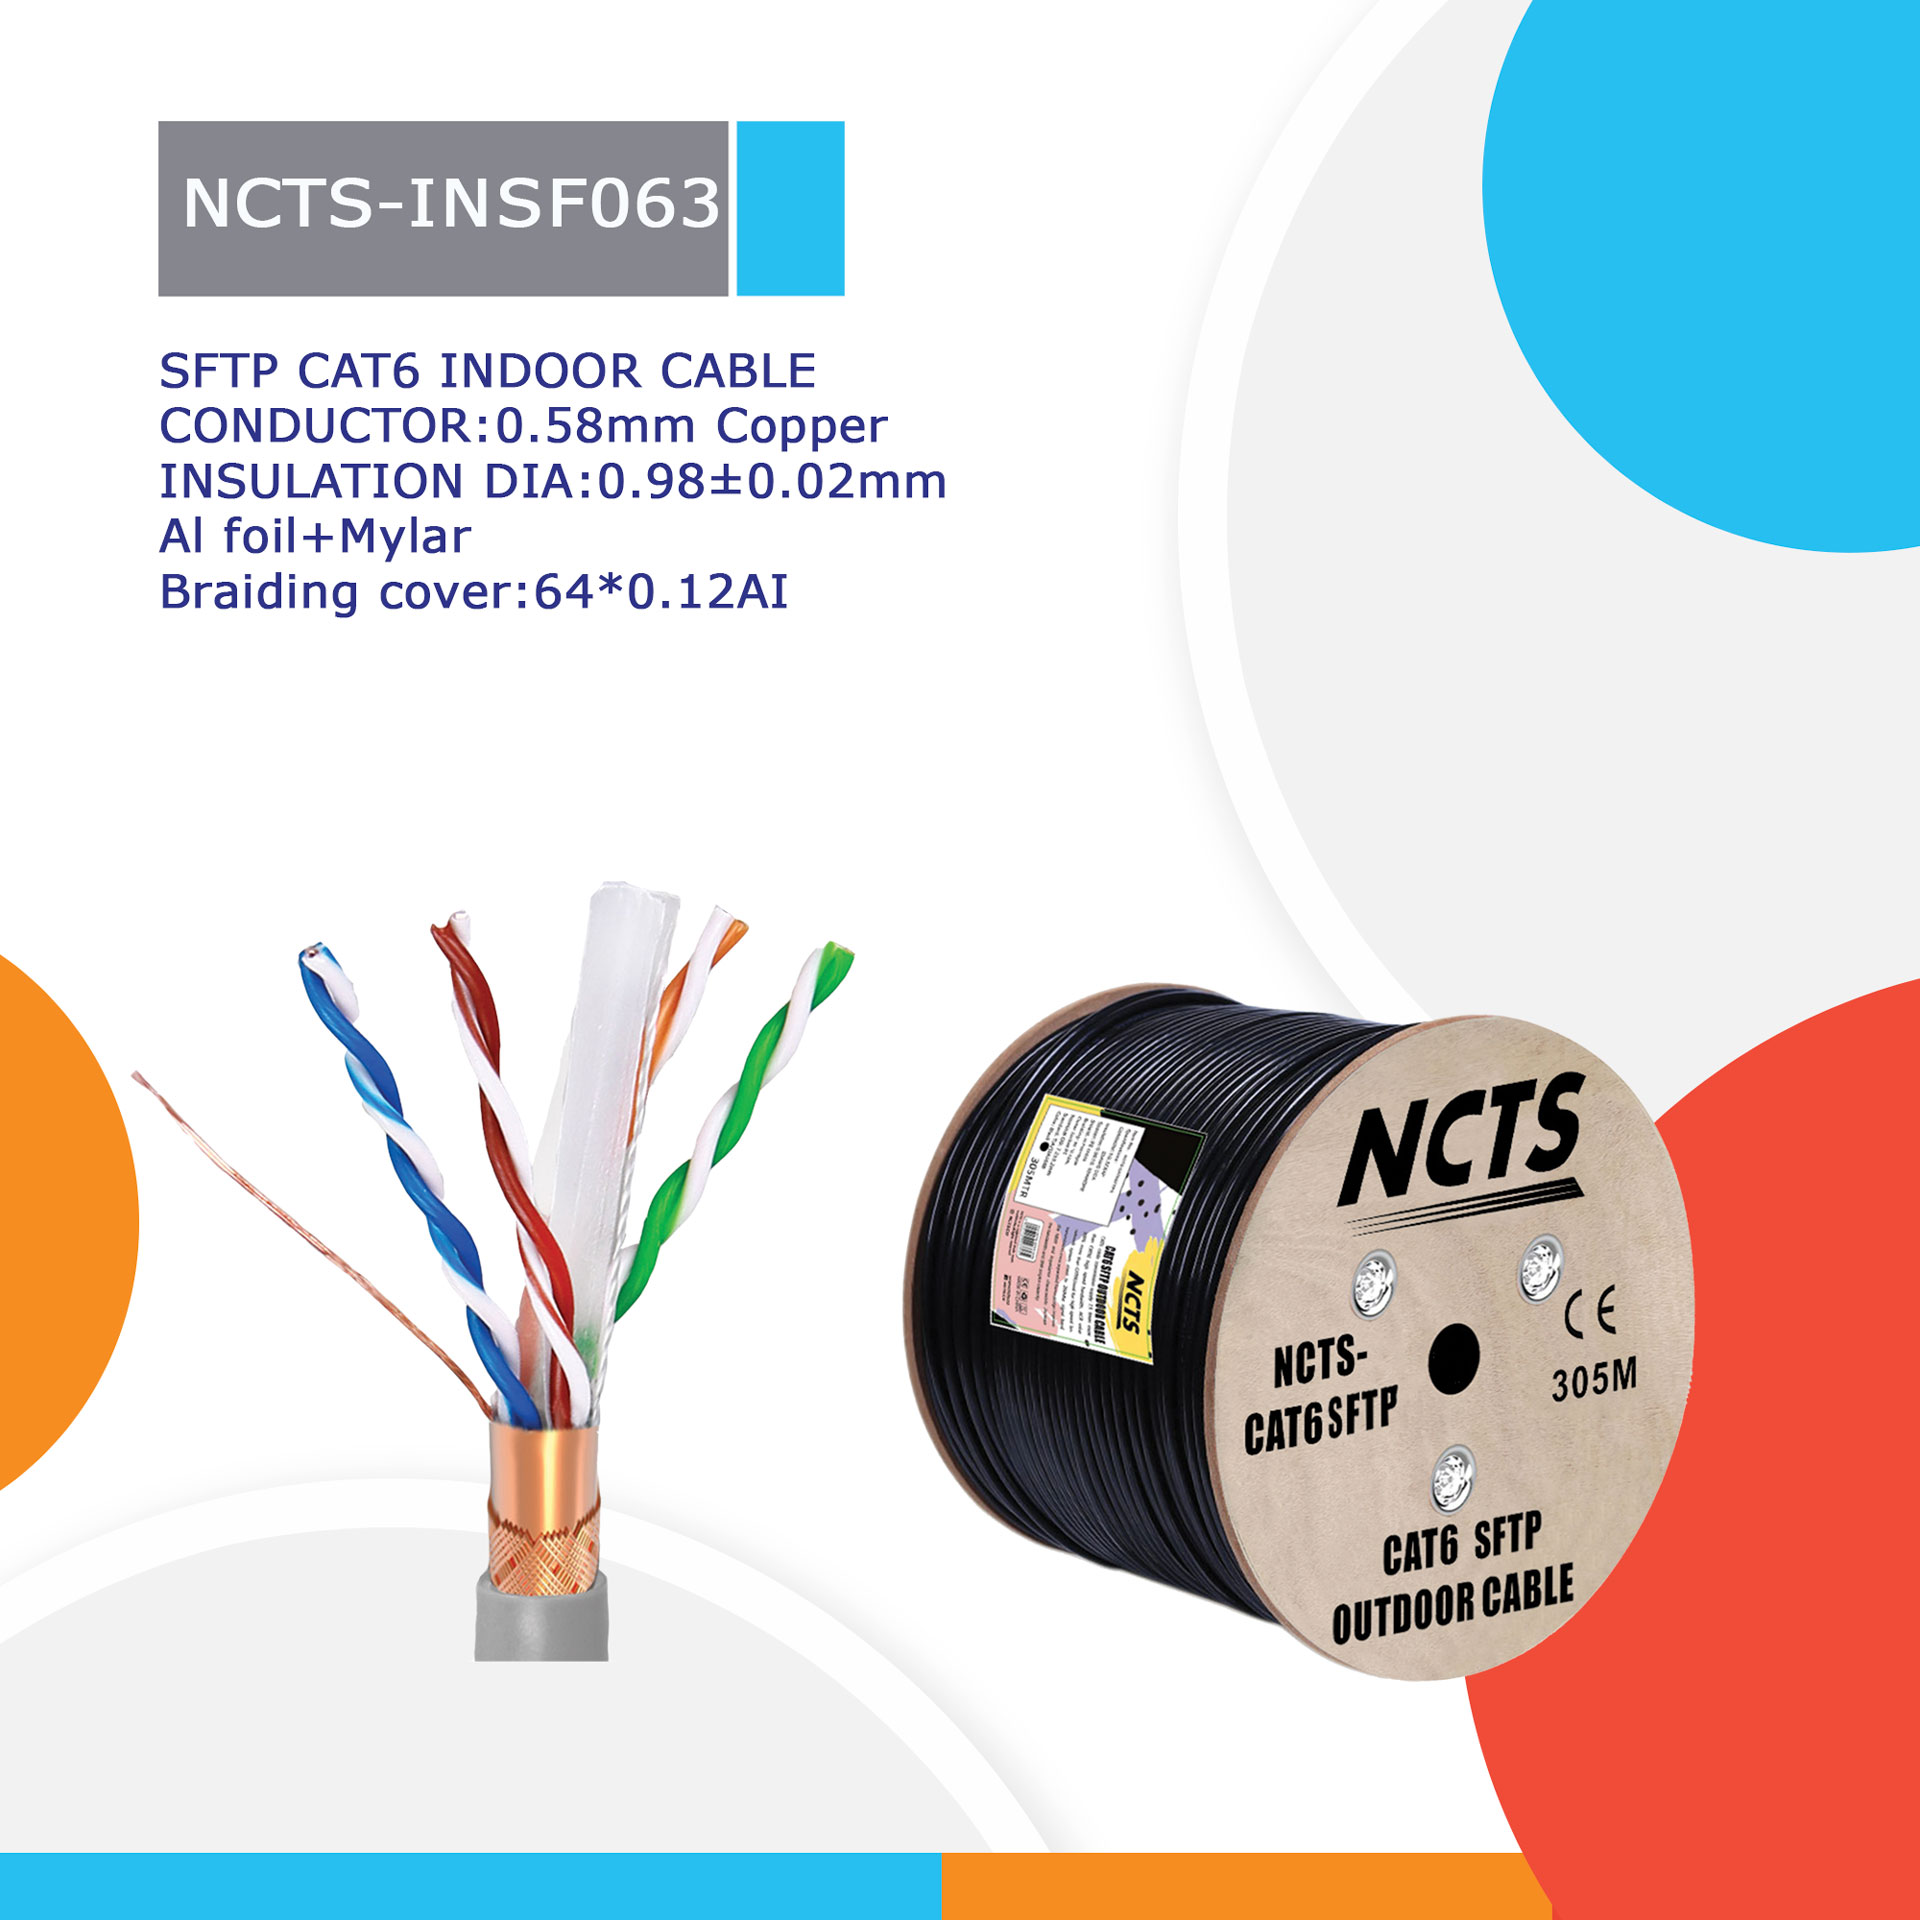 NCTS-INSF063